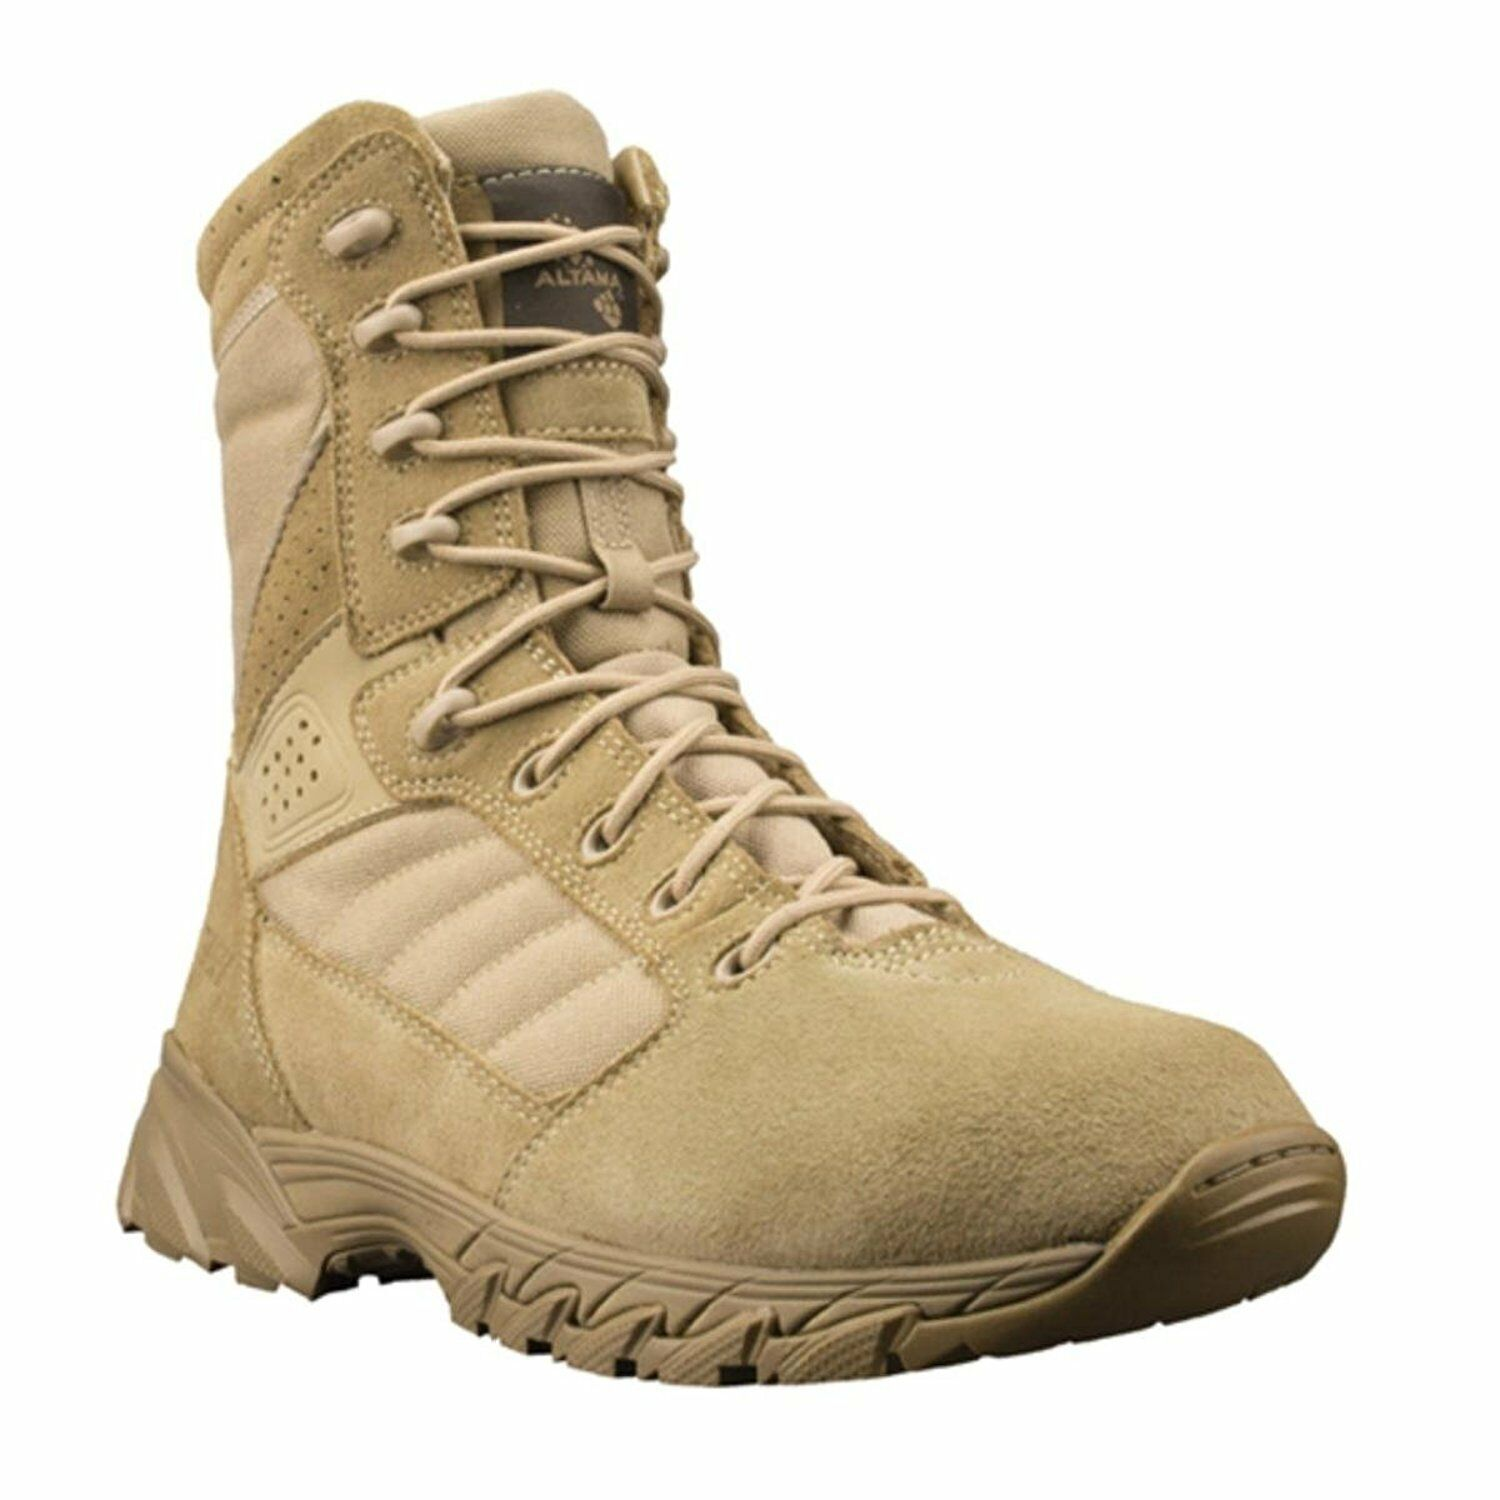 c201970a878 Altama 365802 / 365803 Footwear Men's Foxhound SR 8